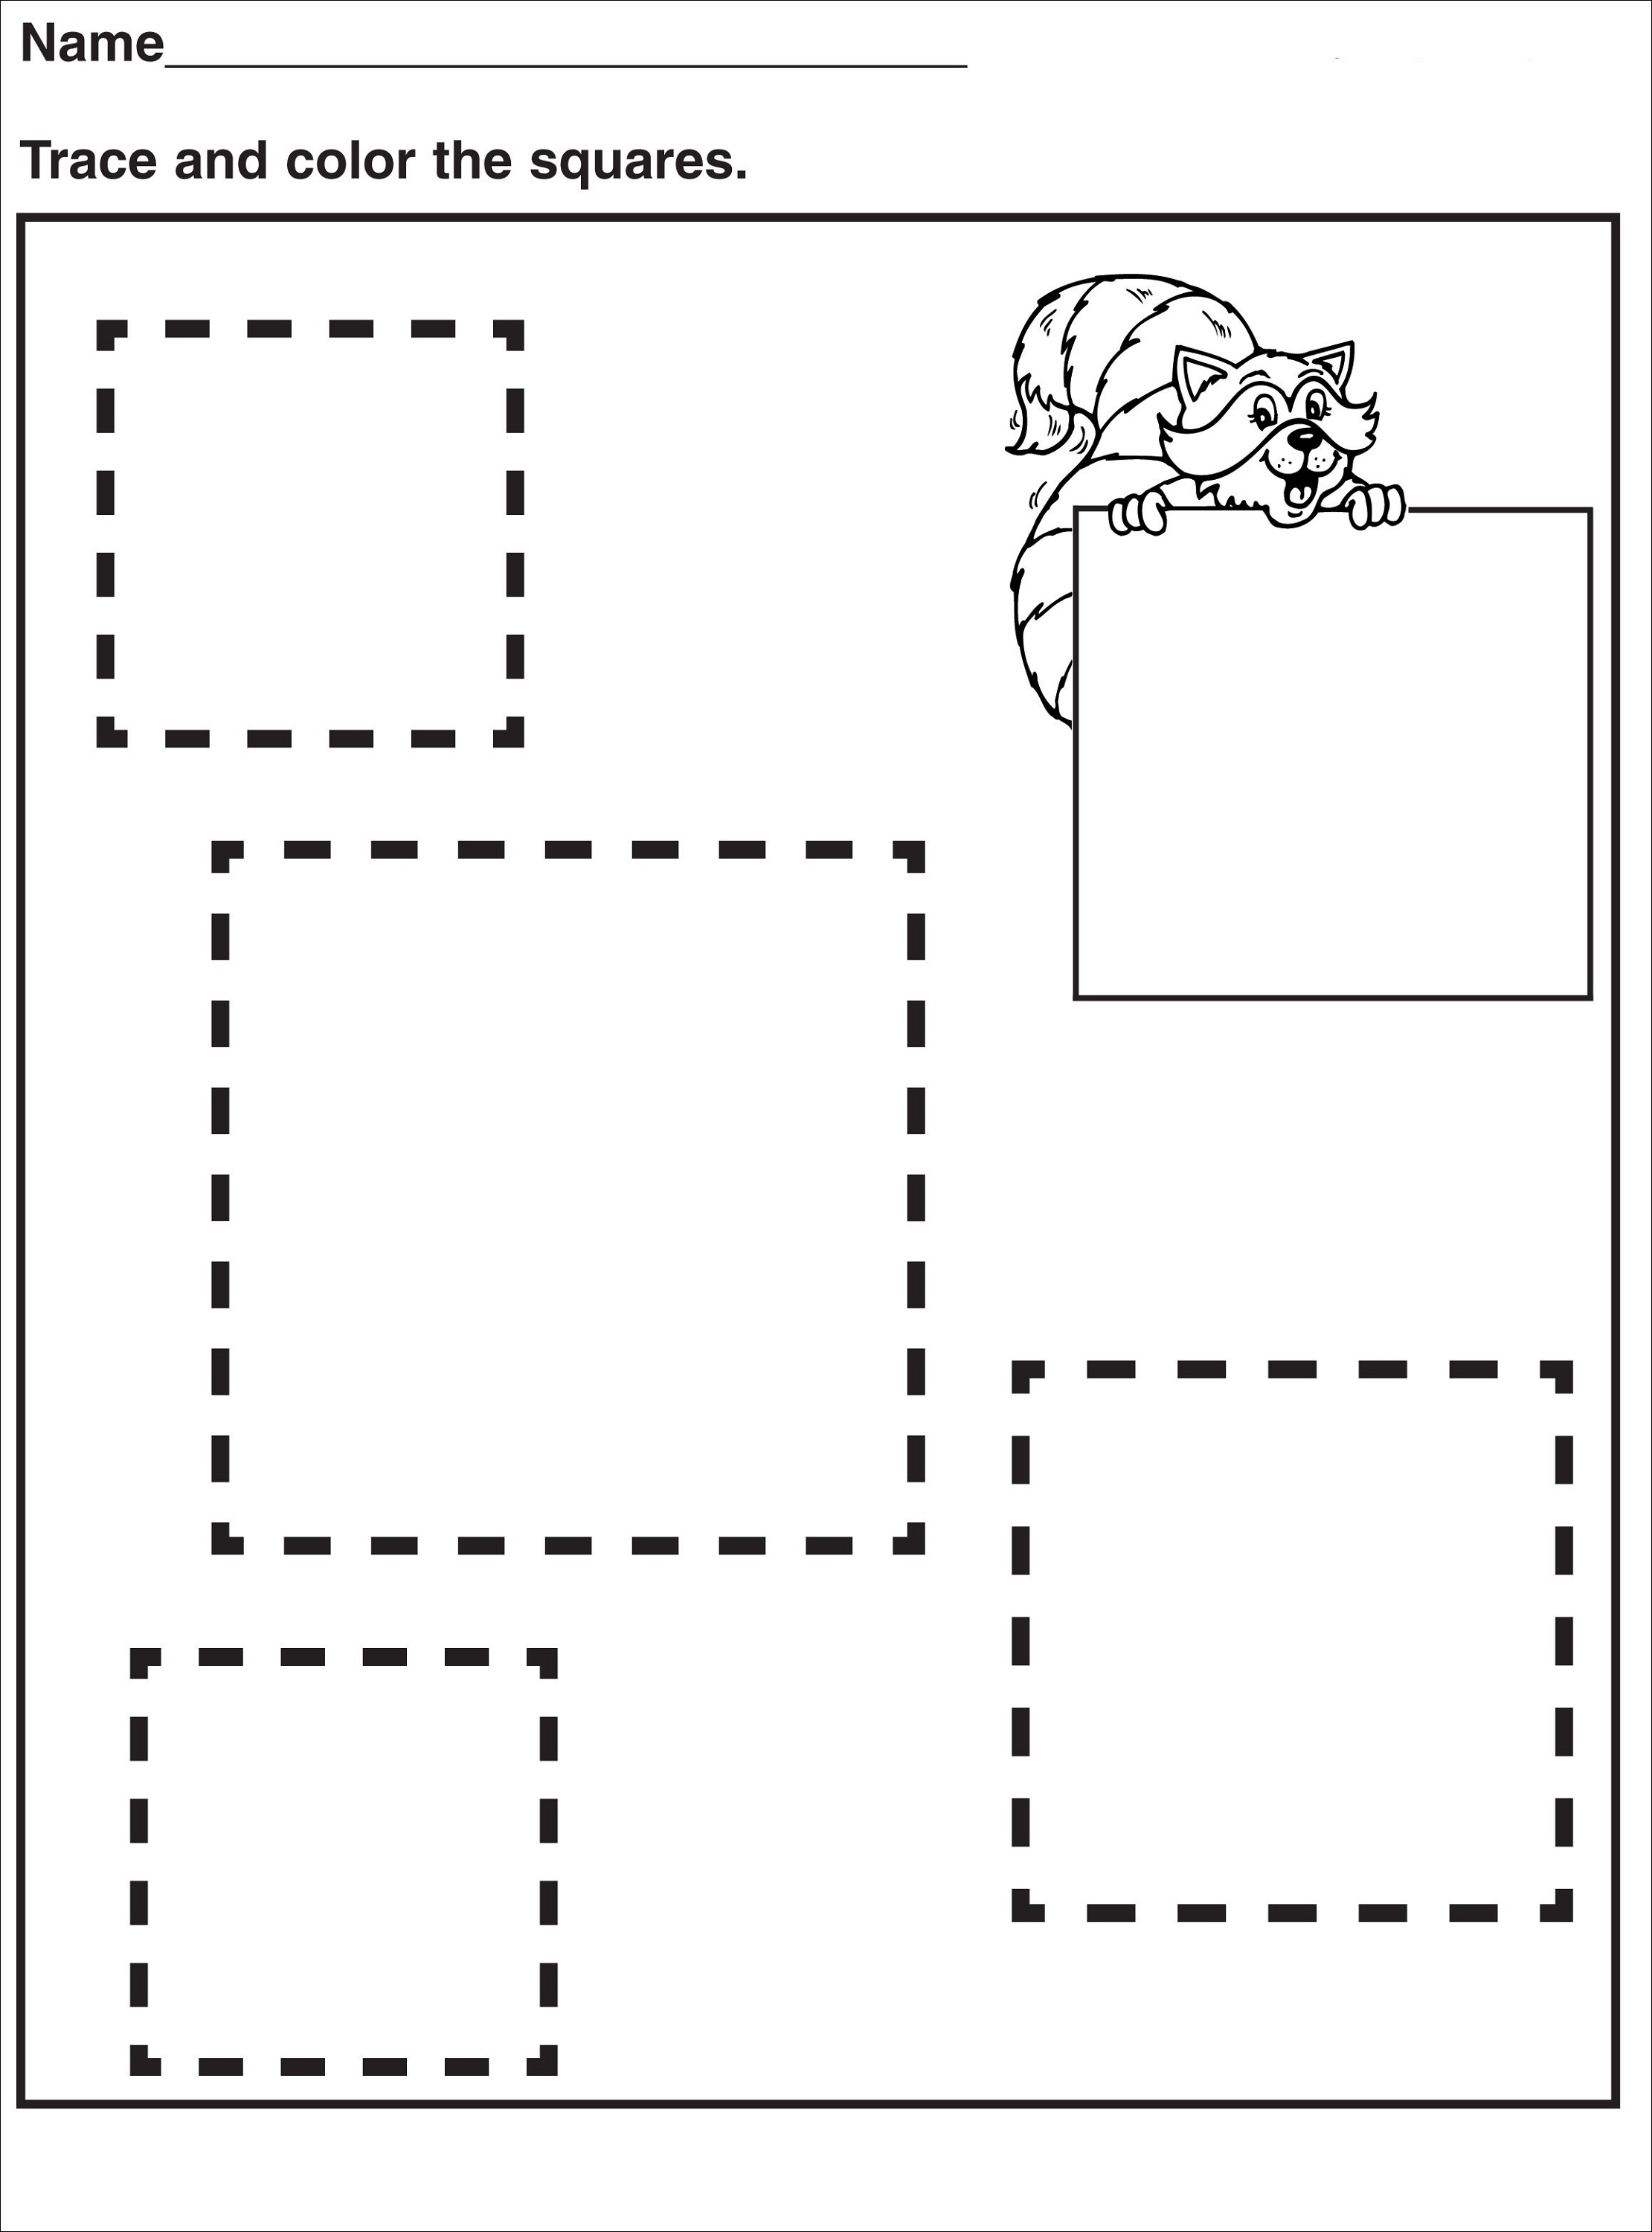 Tracing Pages for Preschool | Activity Shelter